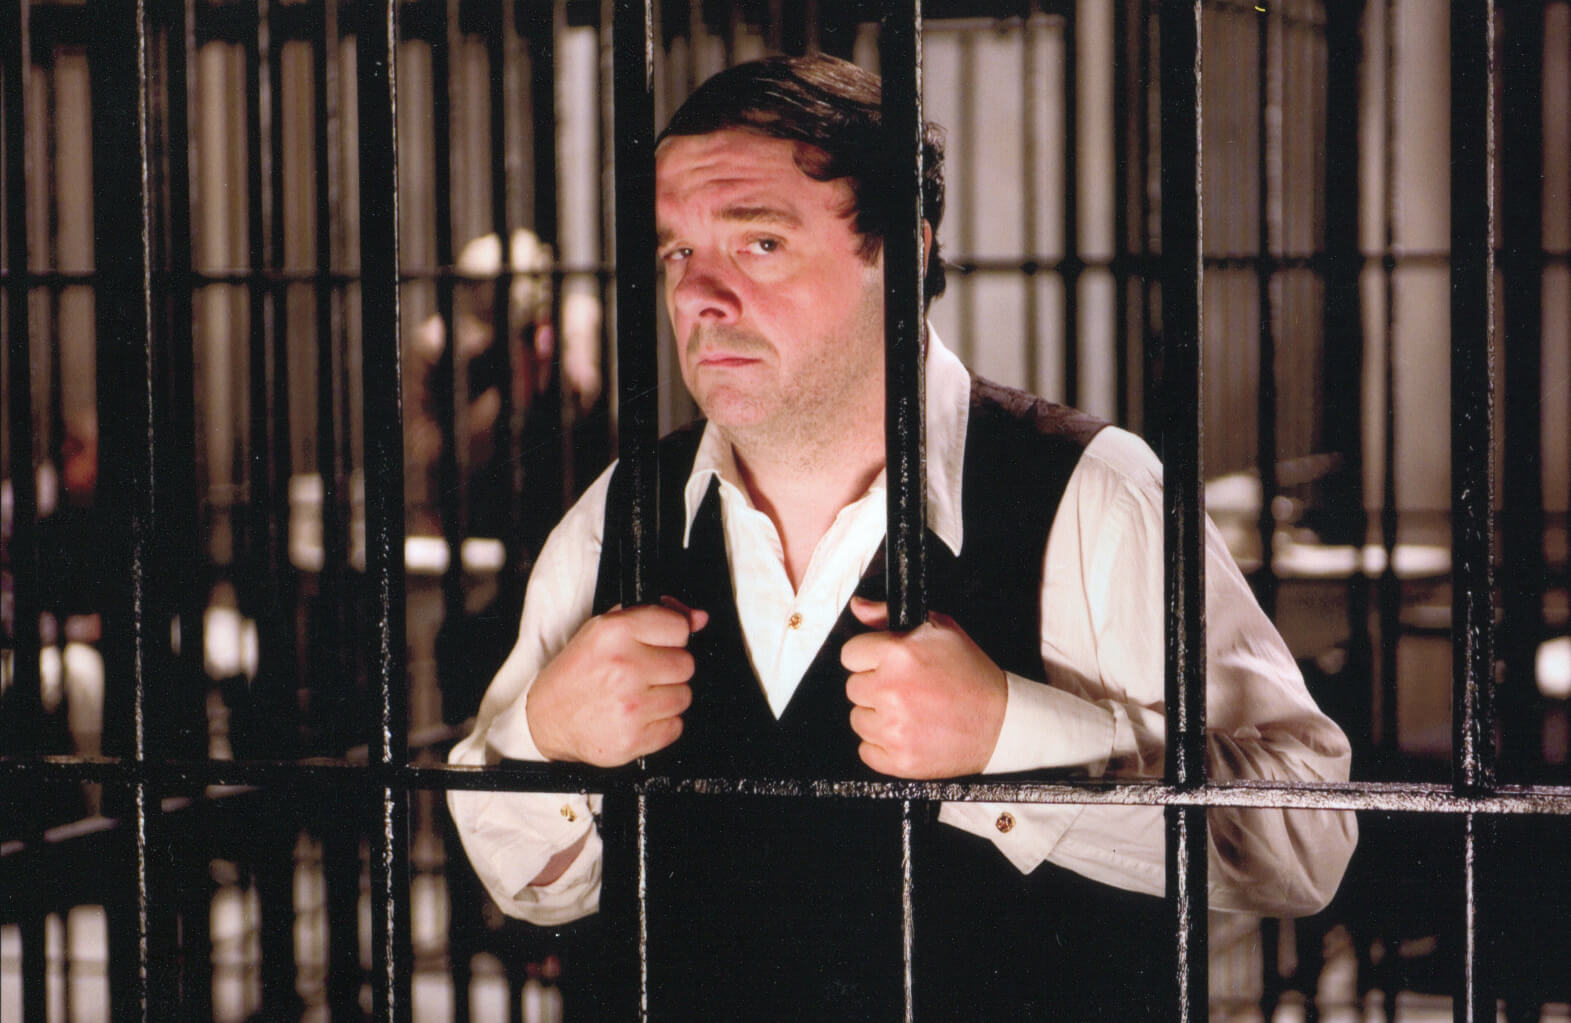 """Max Bialystock (Nathan Lane) looking very disappointed behind bars. He is singing """"Betrayed""""."""